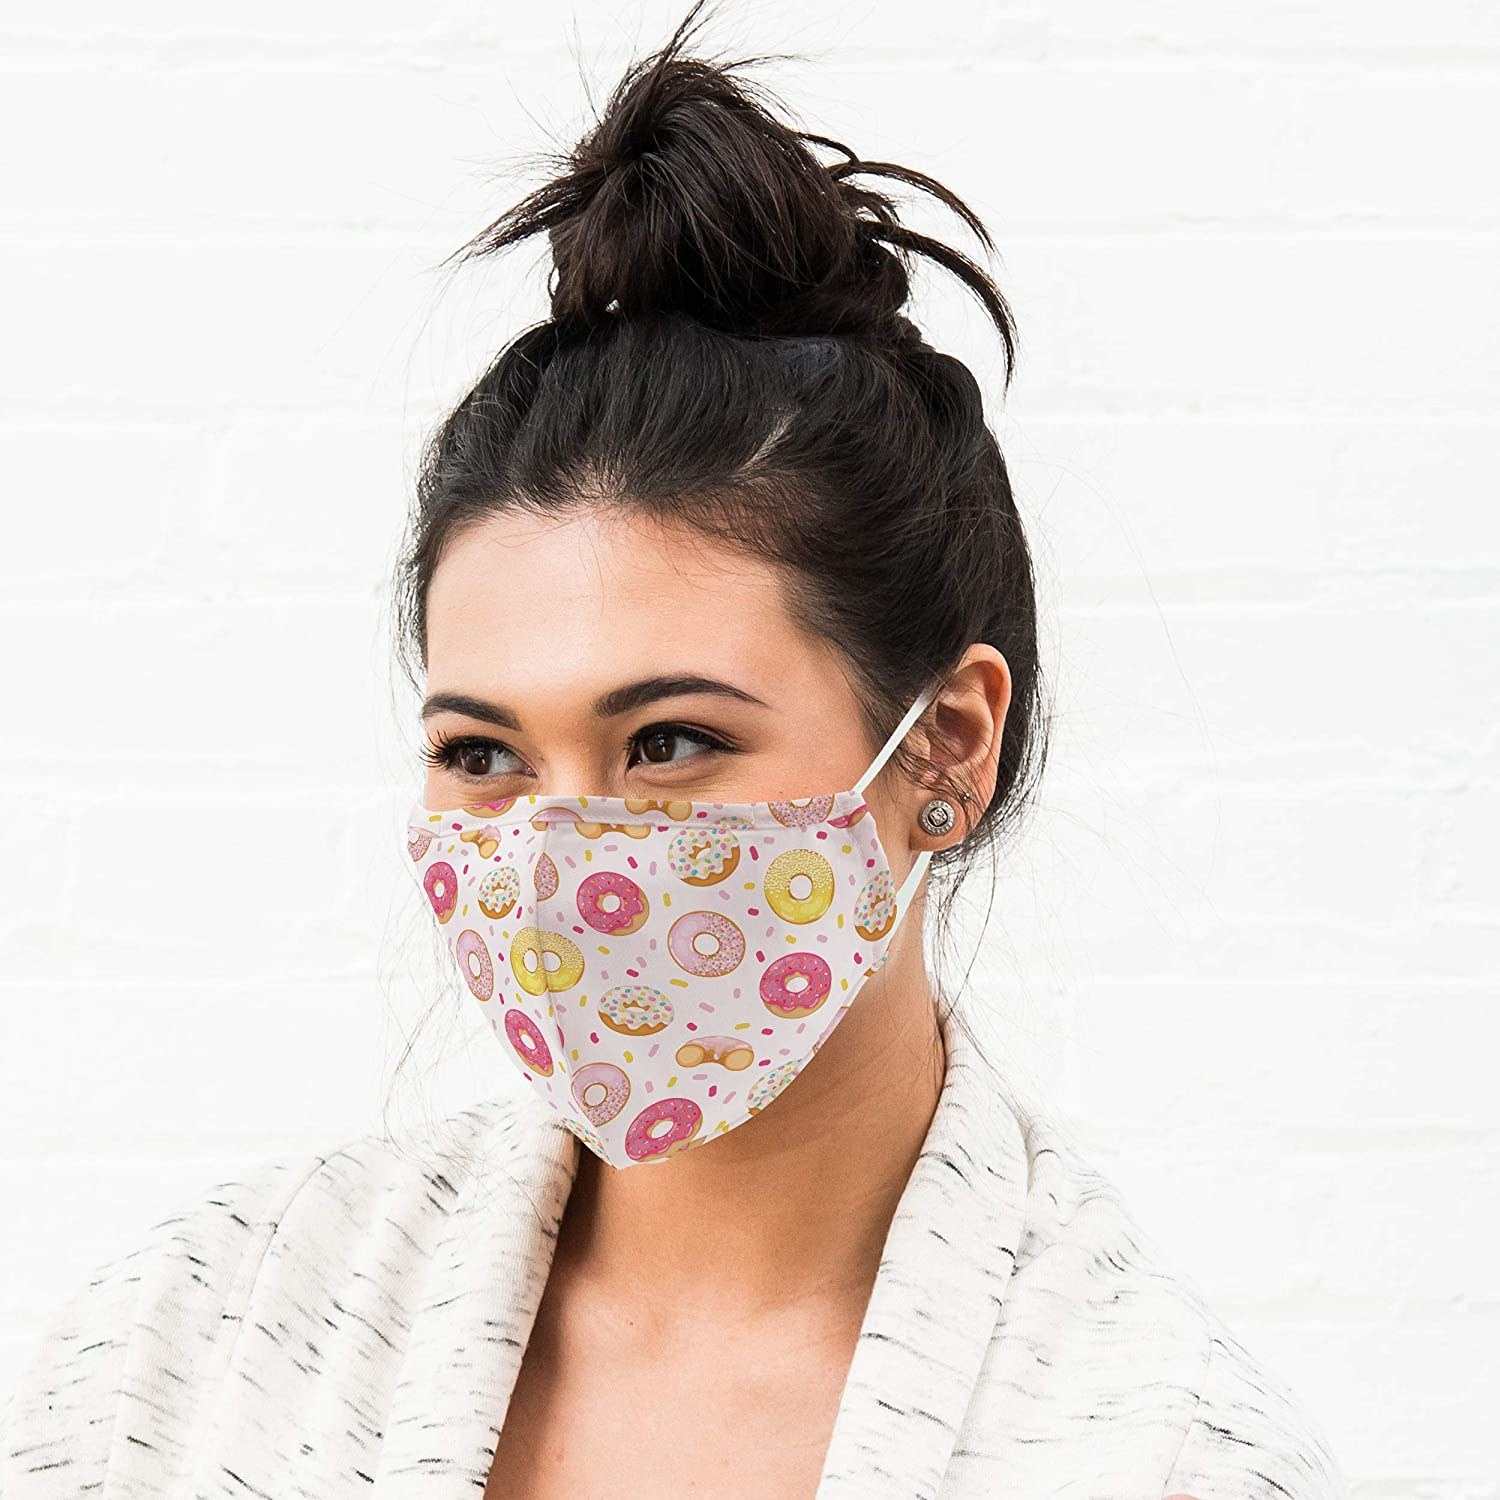 A person wearing a mask covered in donuts